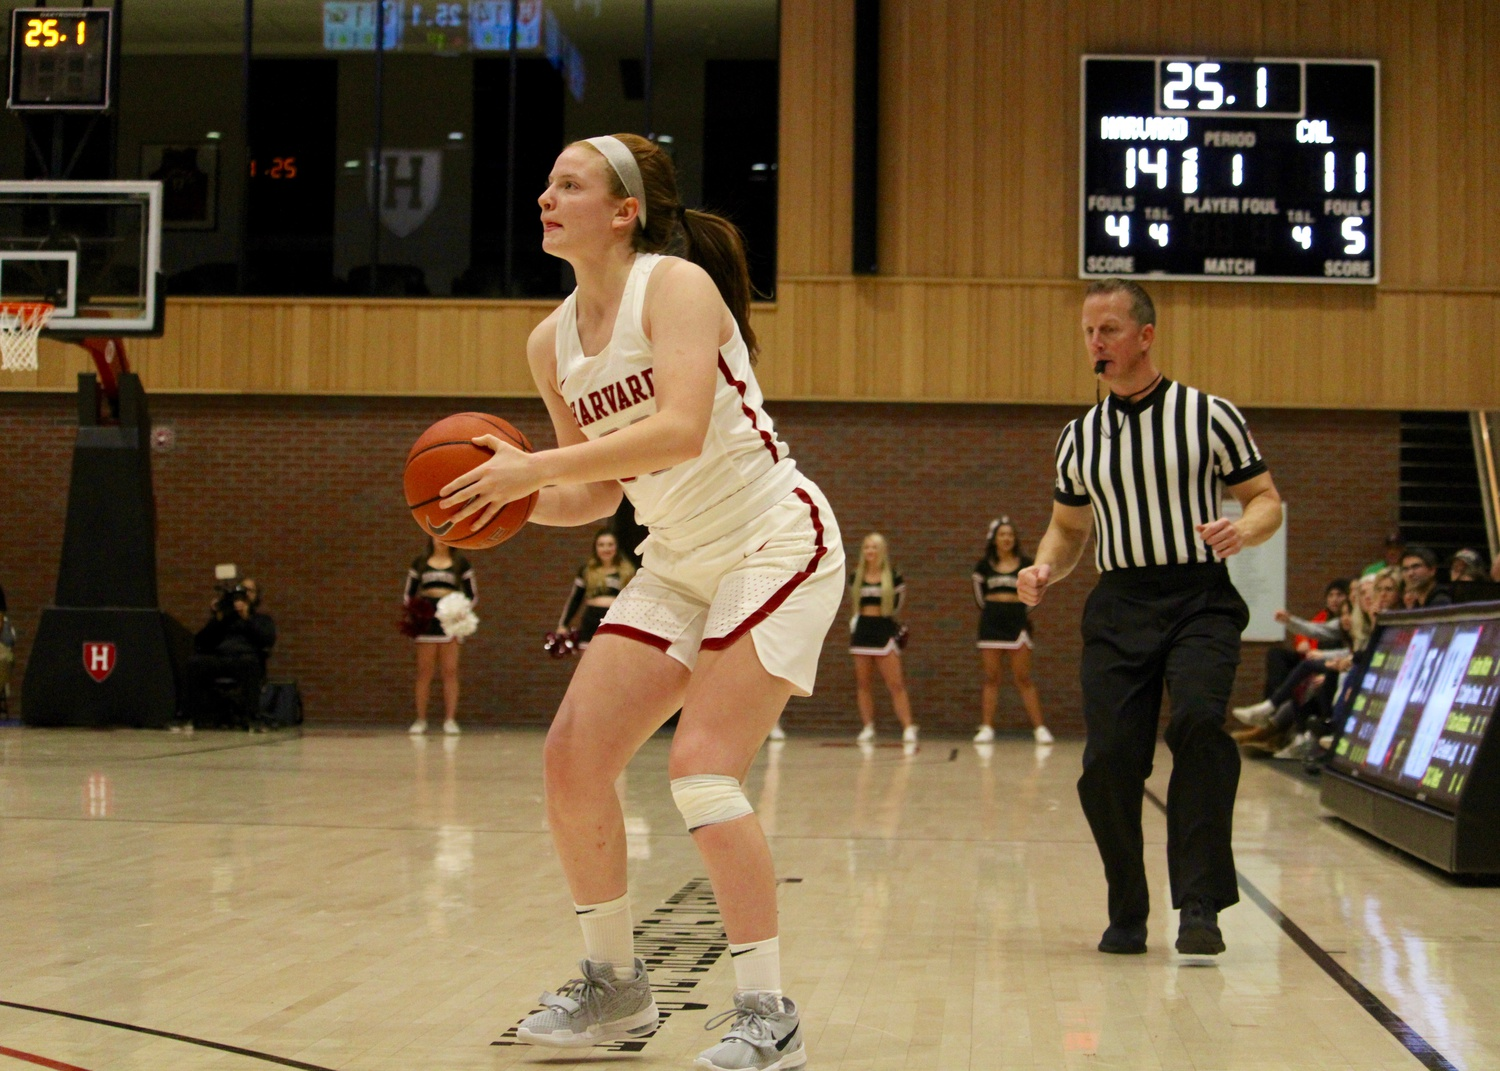 First-year Annie Stritzel scored 17 points on Friday night in a victory over Hartford.